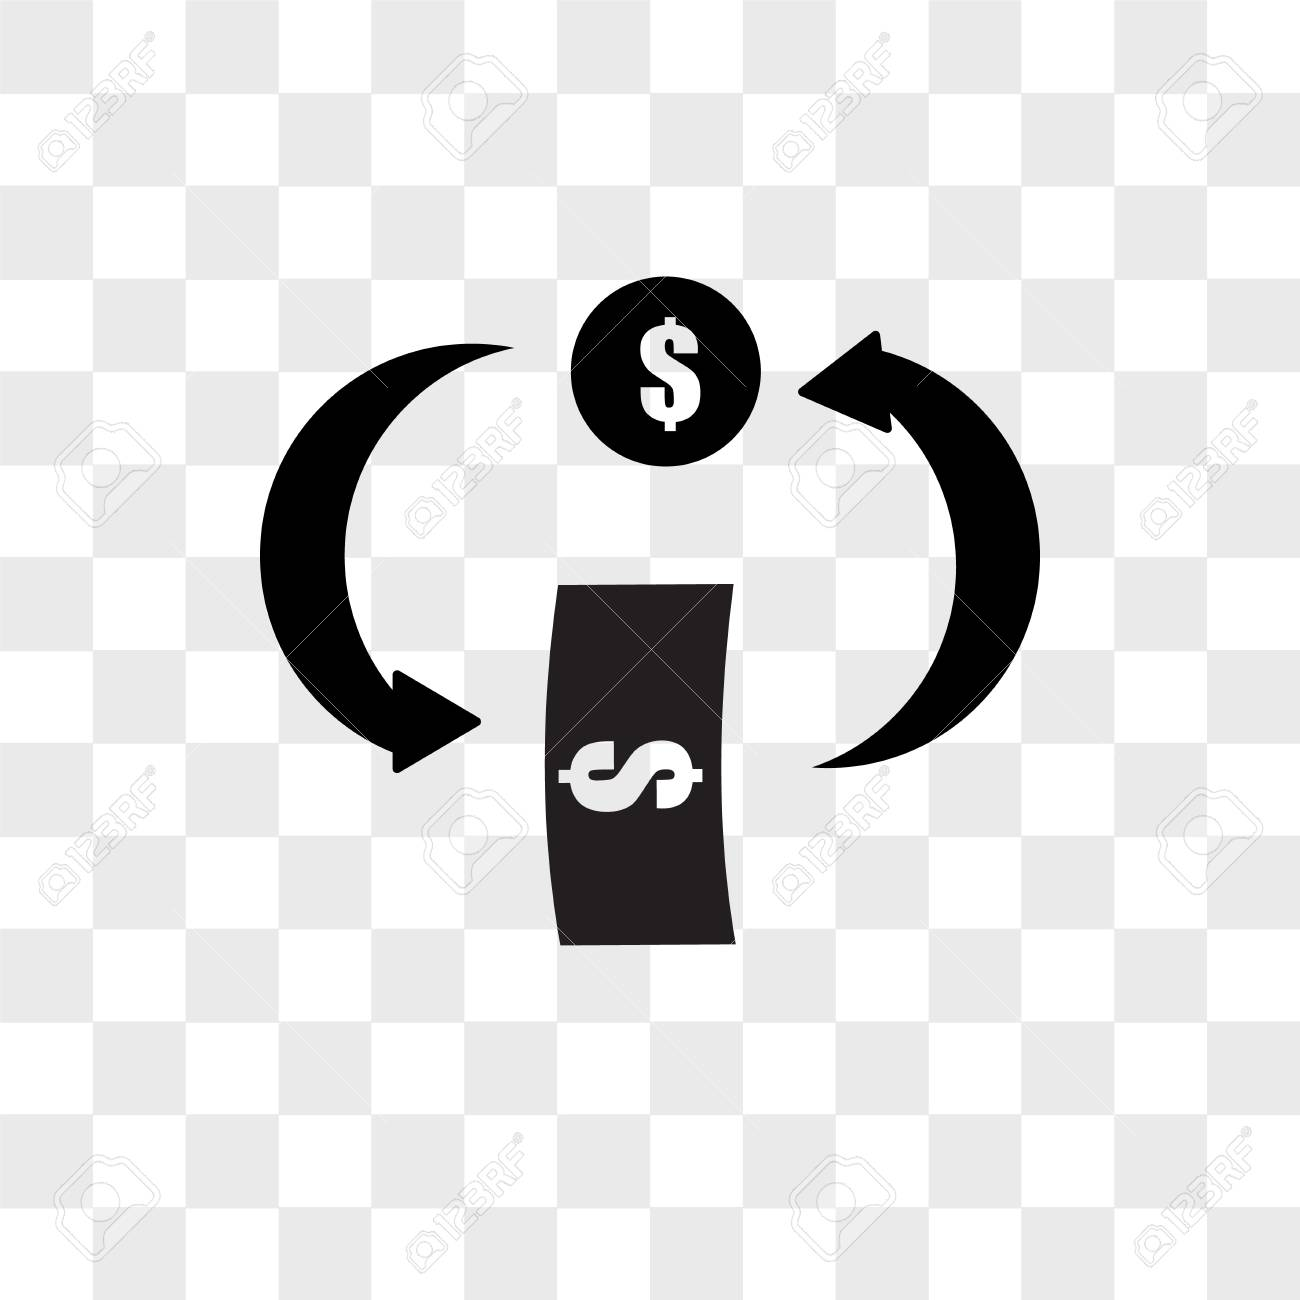 cashback vector icon isolated on transparent background cashback royalty free cliparts vectors and stock illustration image 108991172 cashback vector icon isolated on transparent background cashback